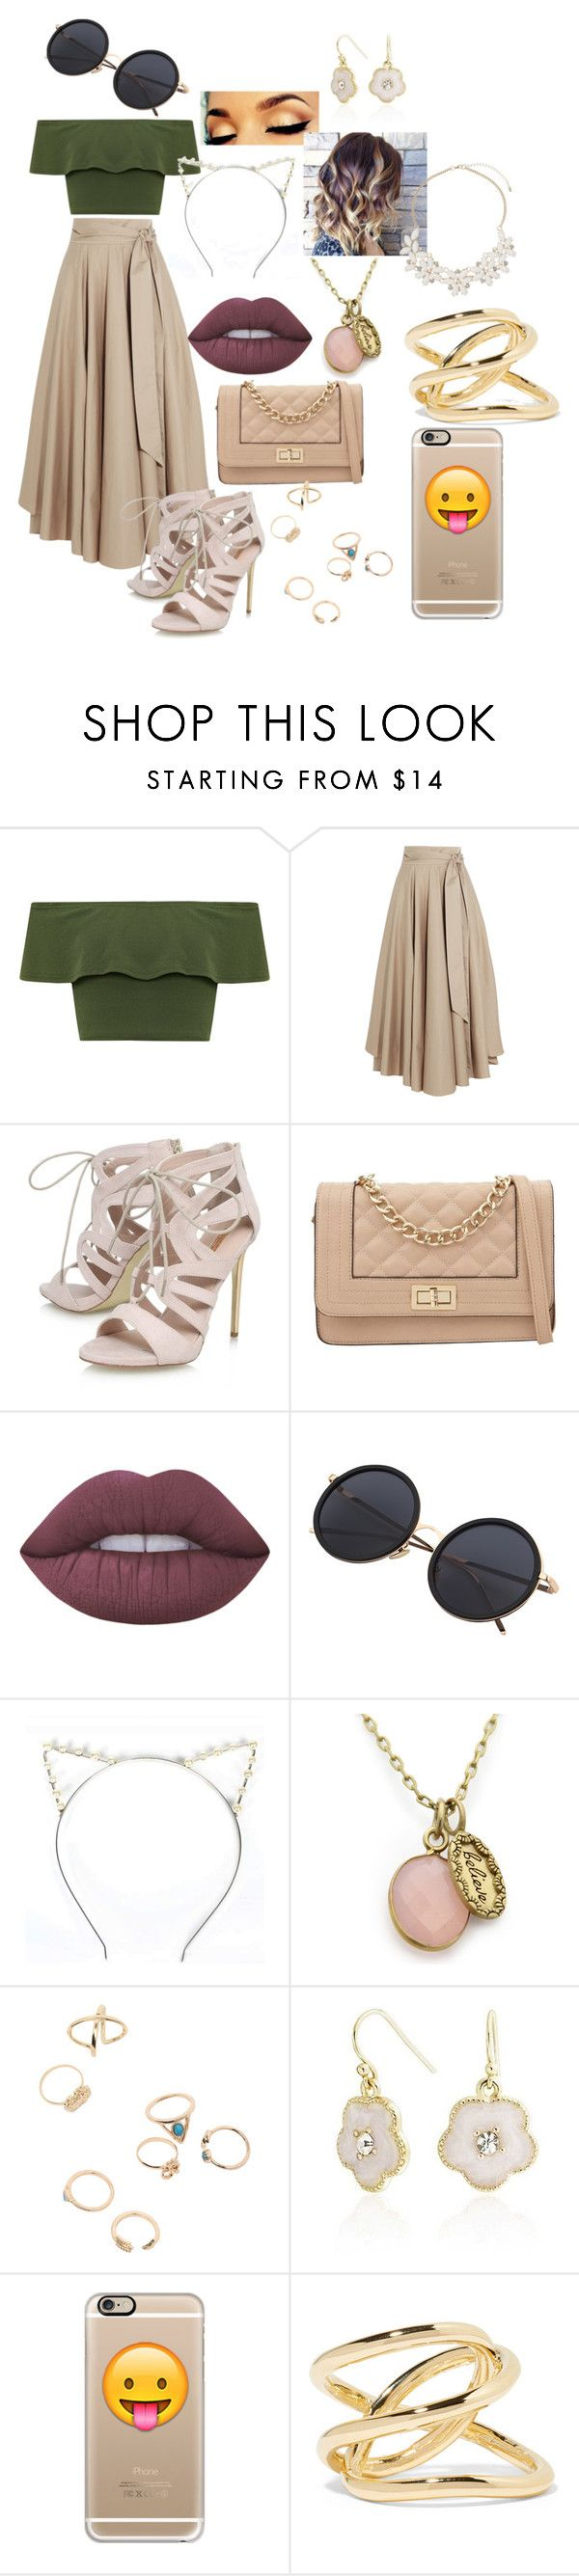 """Untitled #250"" by itz-meh-liz on Polyvore featuring WearAll, TIBI, Carvela, Call it SPRING, Lime Crime, Emi Jewellery, Bling Jewelry, Casetify, Jennifer Fisher and Dorothy Perkins"